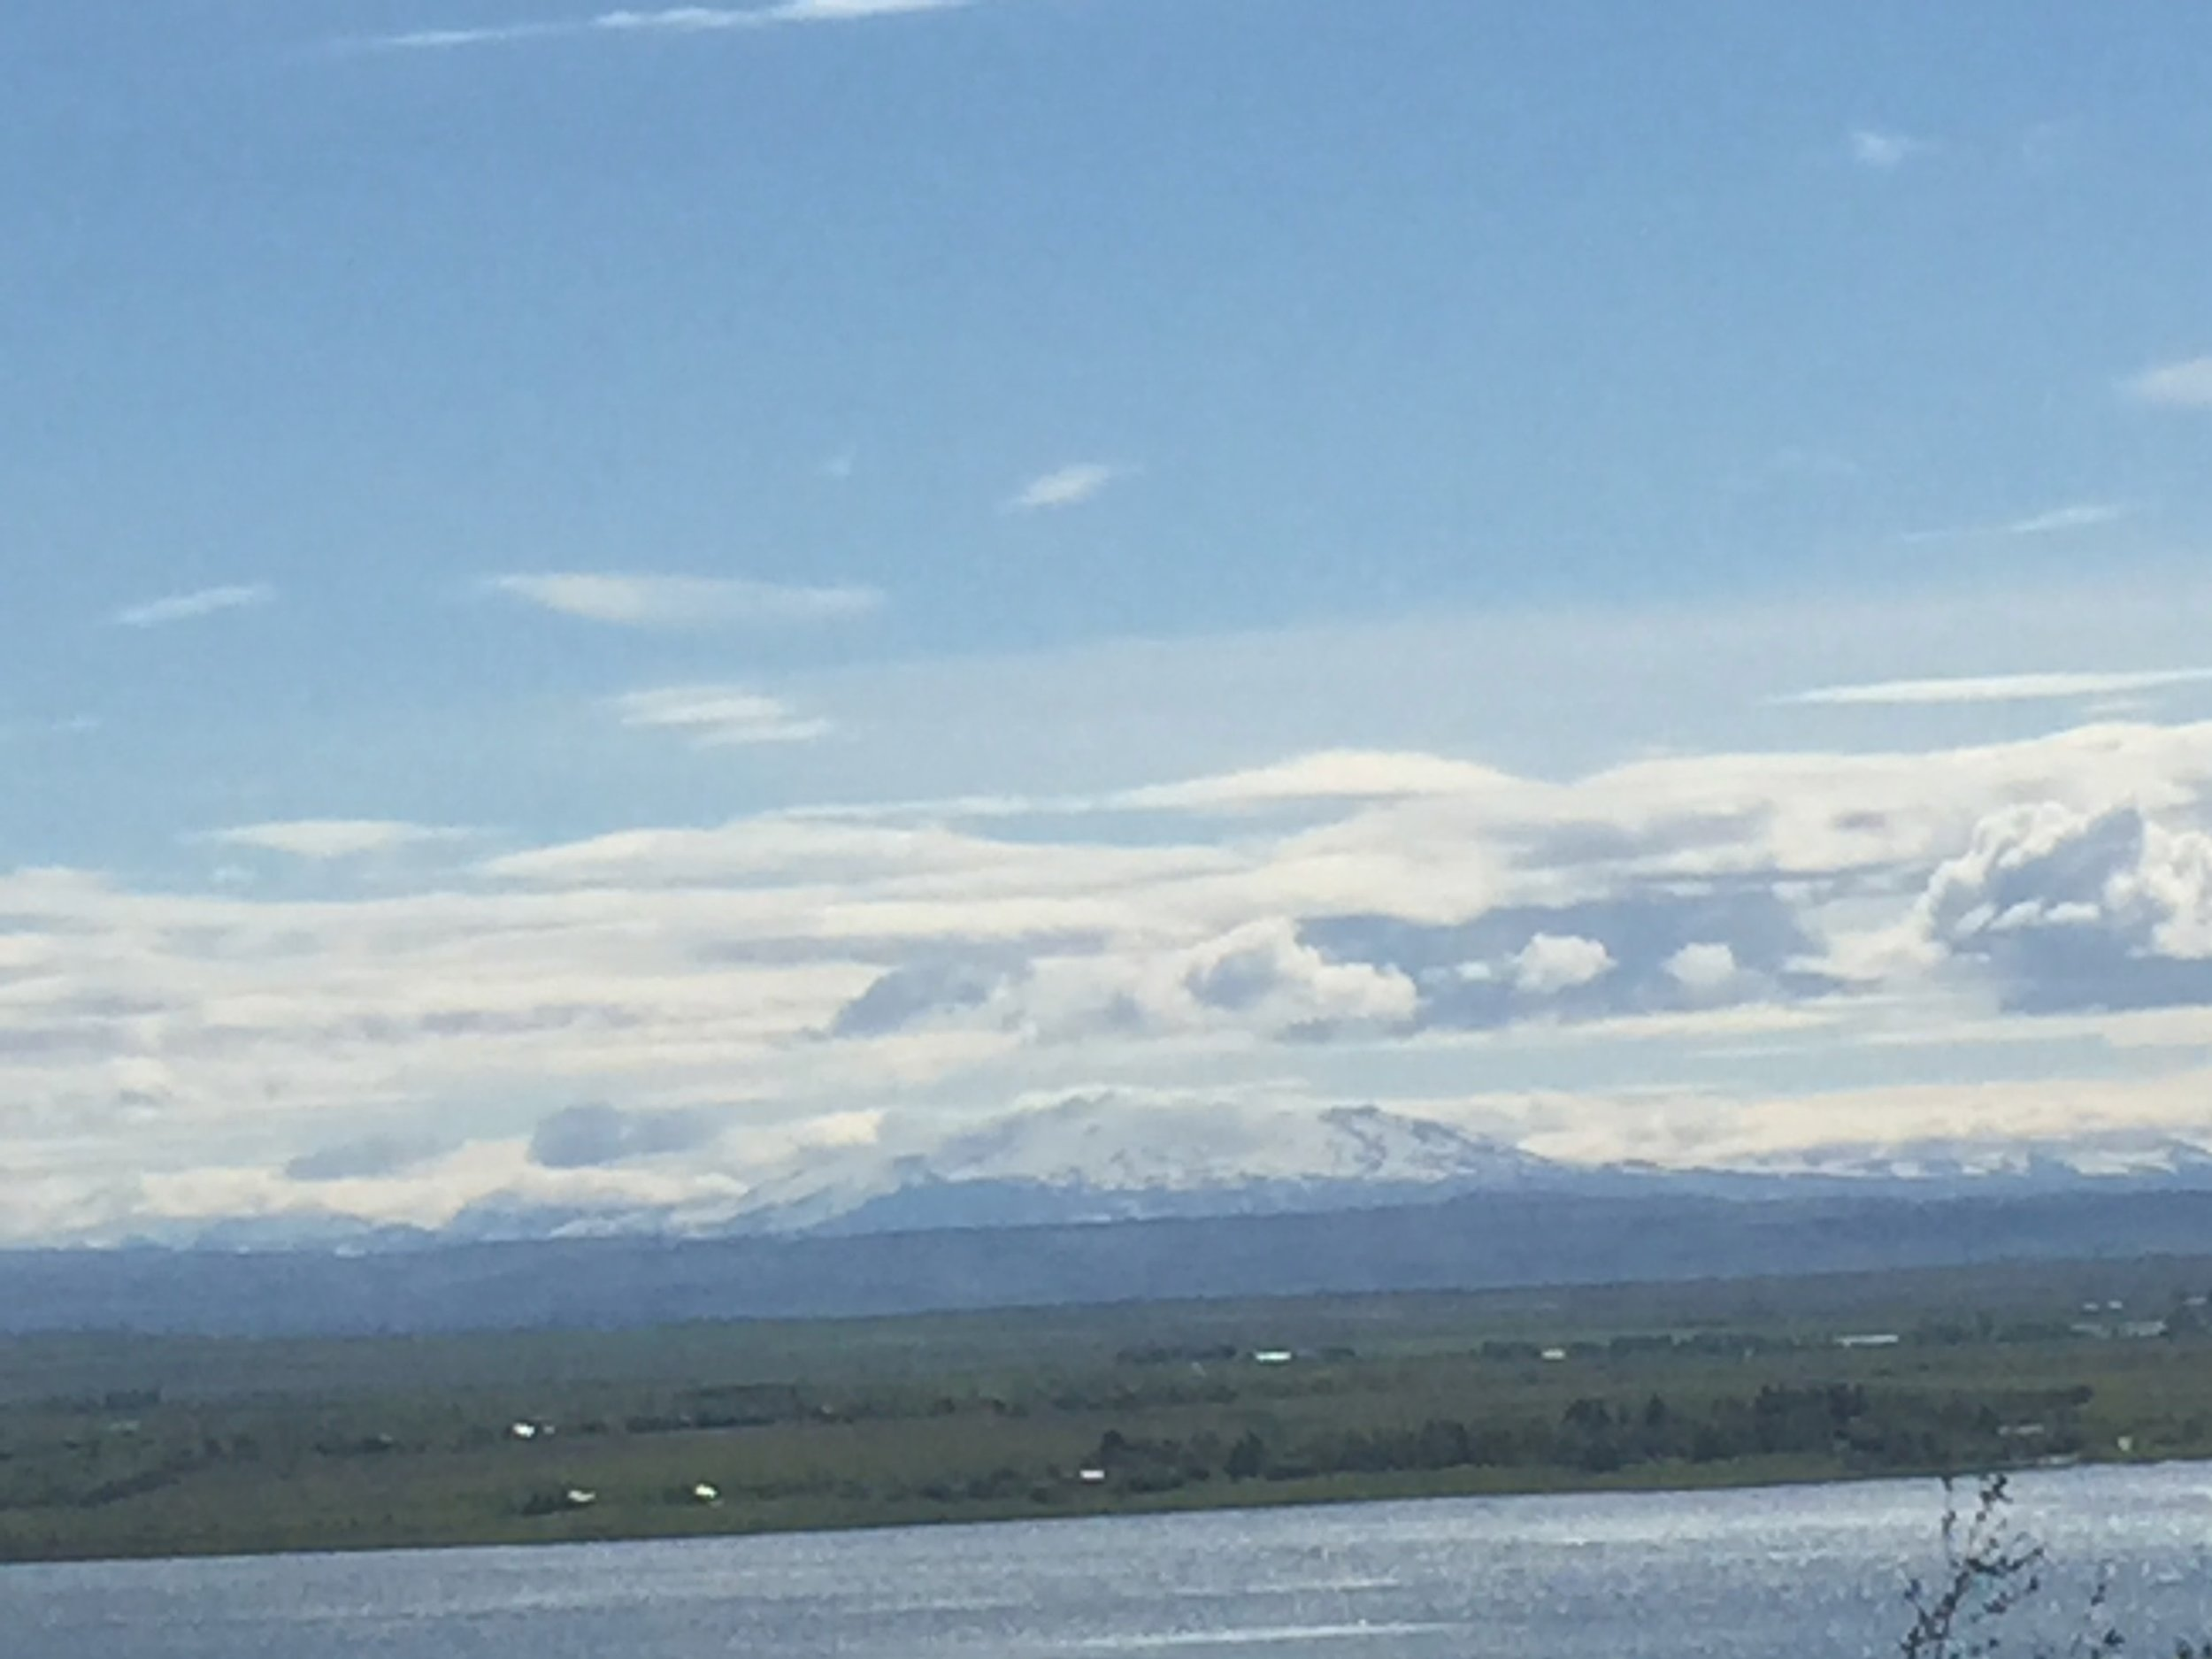 View from Studio across Lake at Laugarvatn. Rare sighting of Hekla without cloud-cover. Also due to erupt any time!